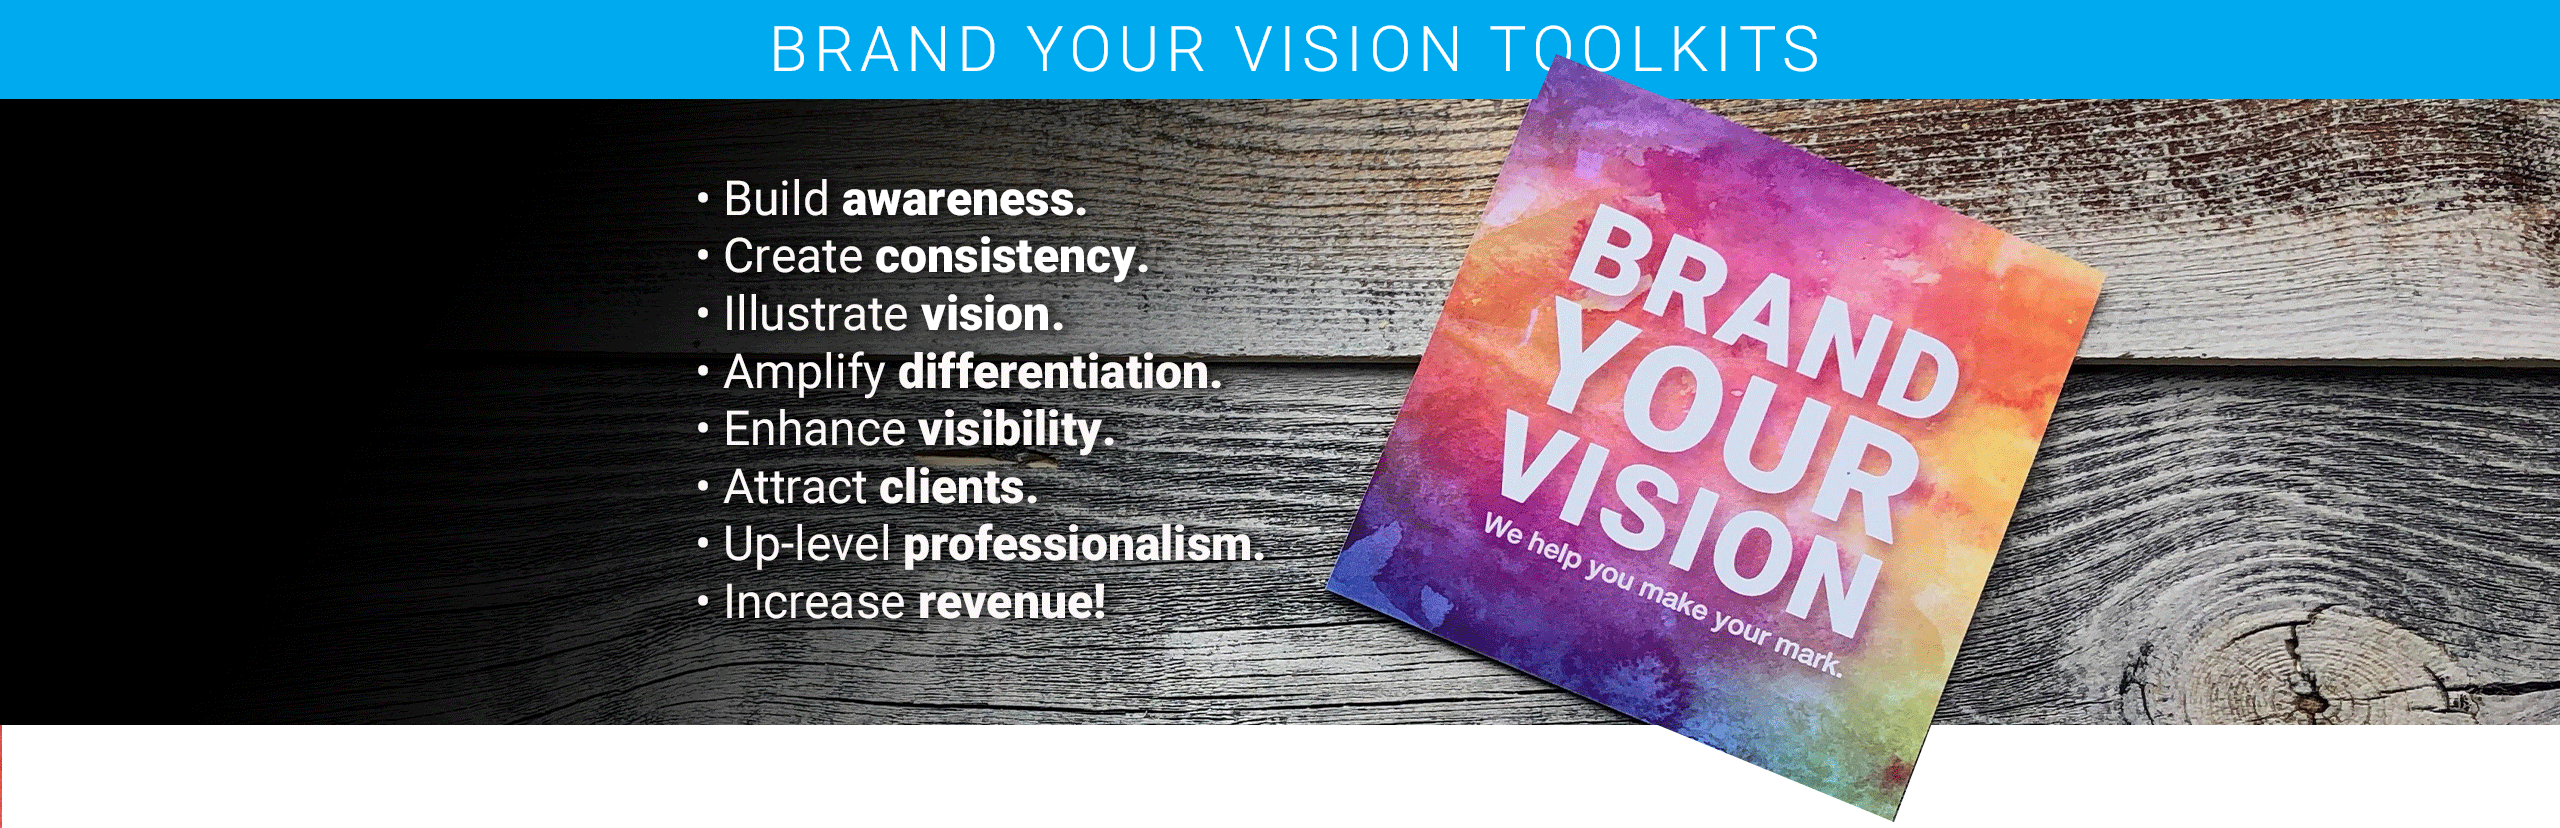 Brand Your Vision Toolkits